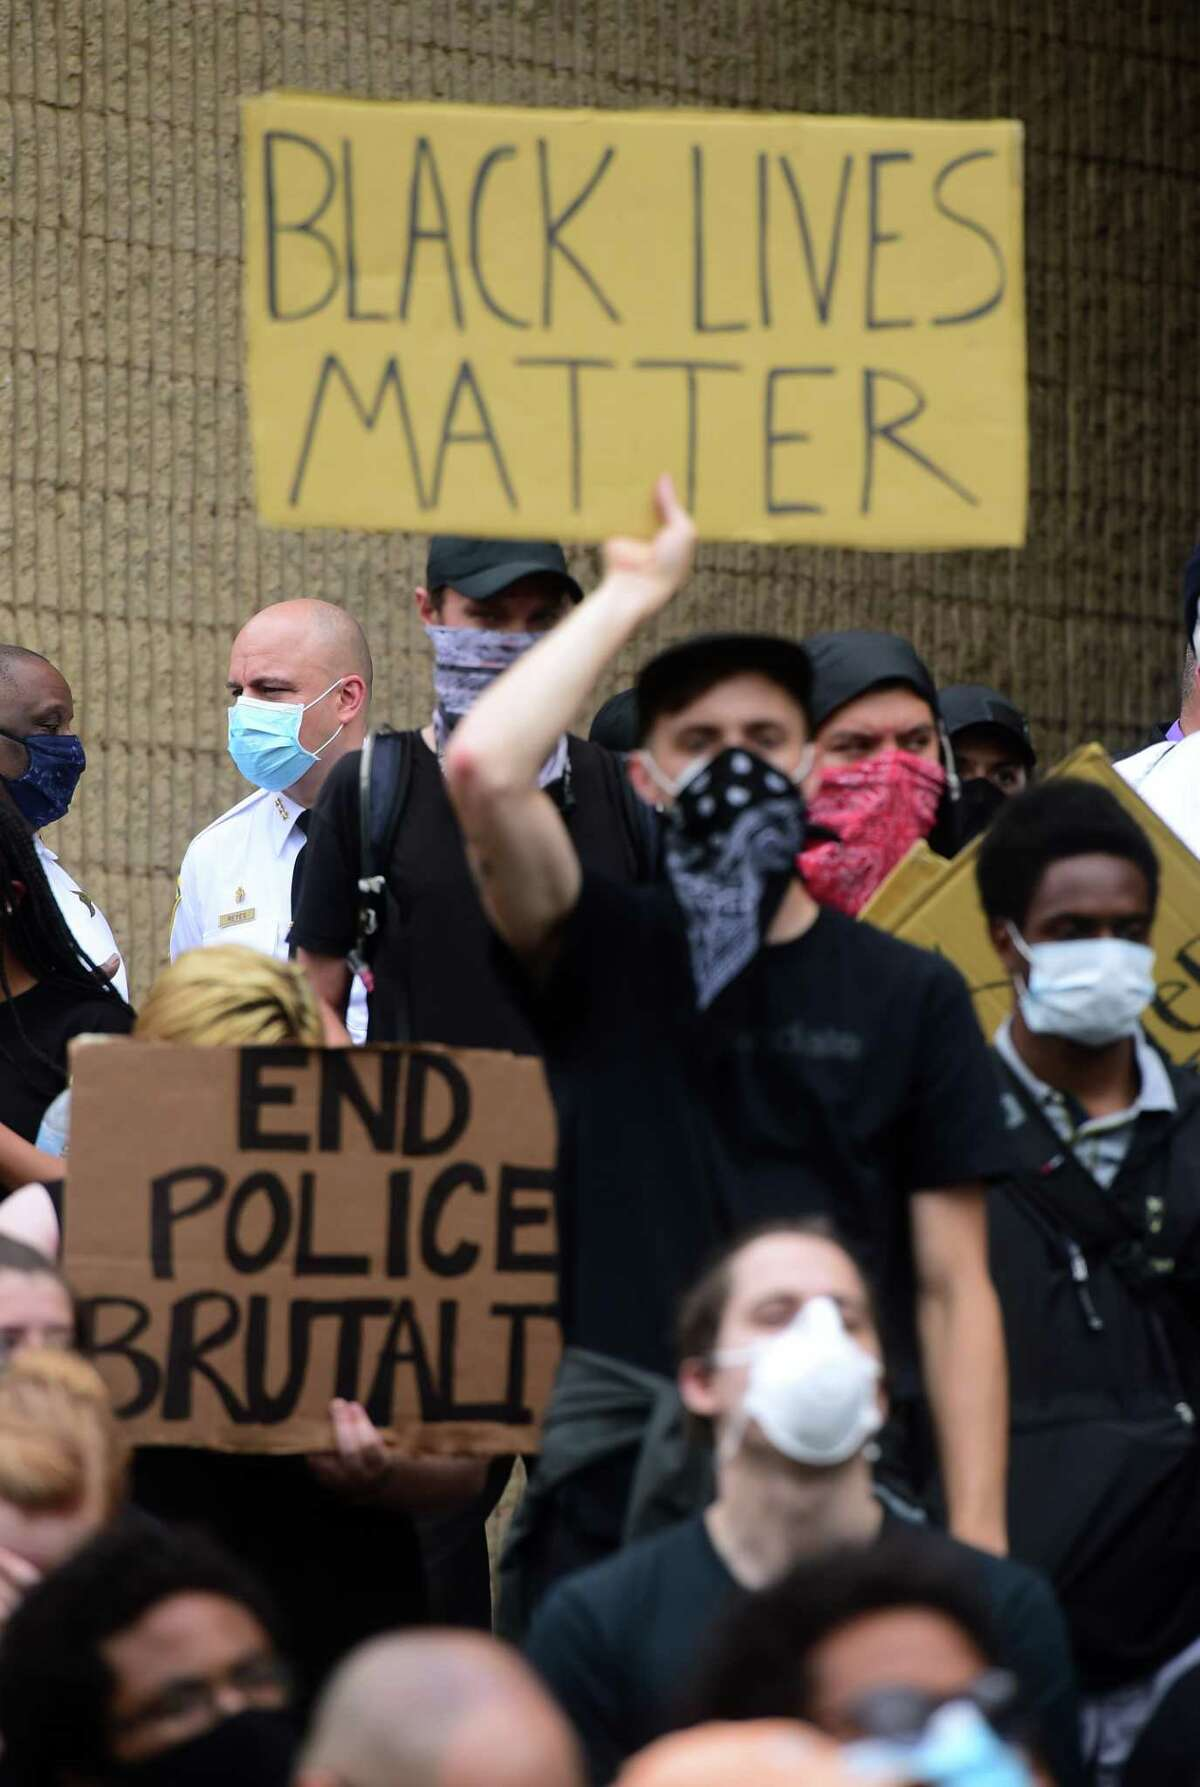 People listen to youth speakers in front of the New Haven Police Department during a protest against police brutality and the killing of George Floyd organized by the Citywide Youth Coalition and Black Lives Matter New Haven on June 5.